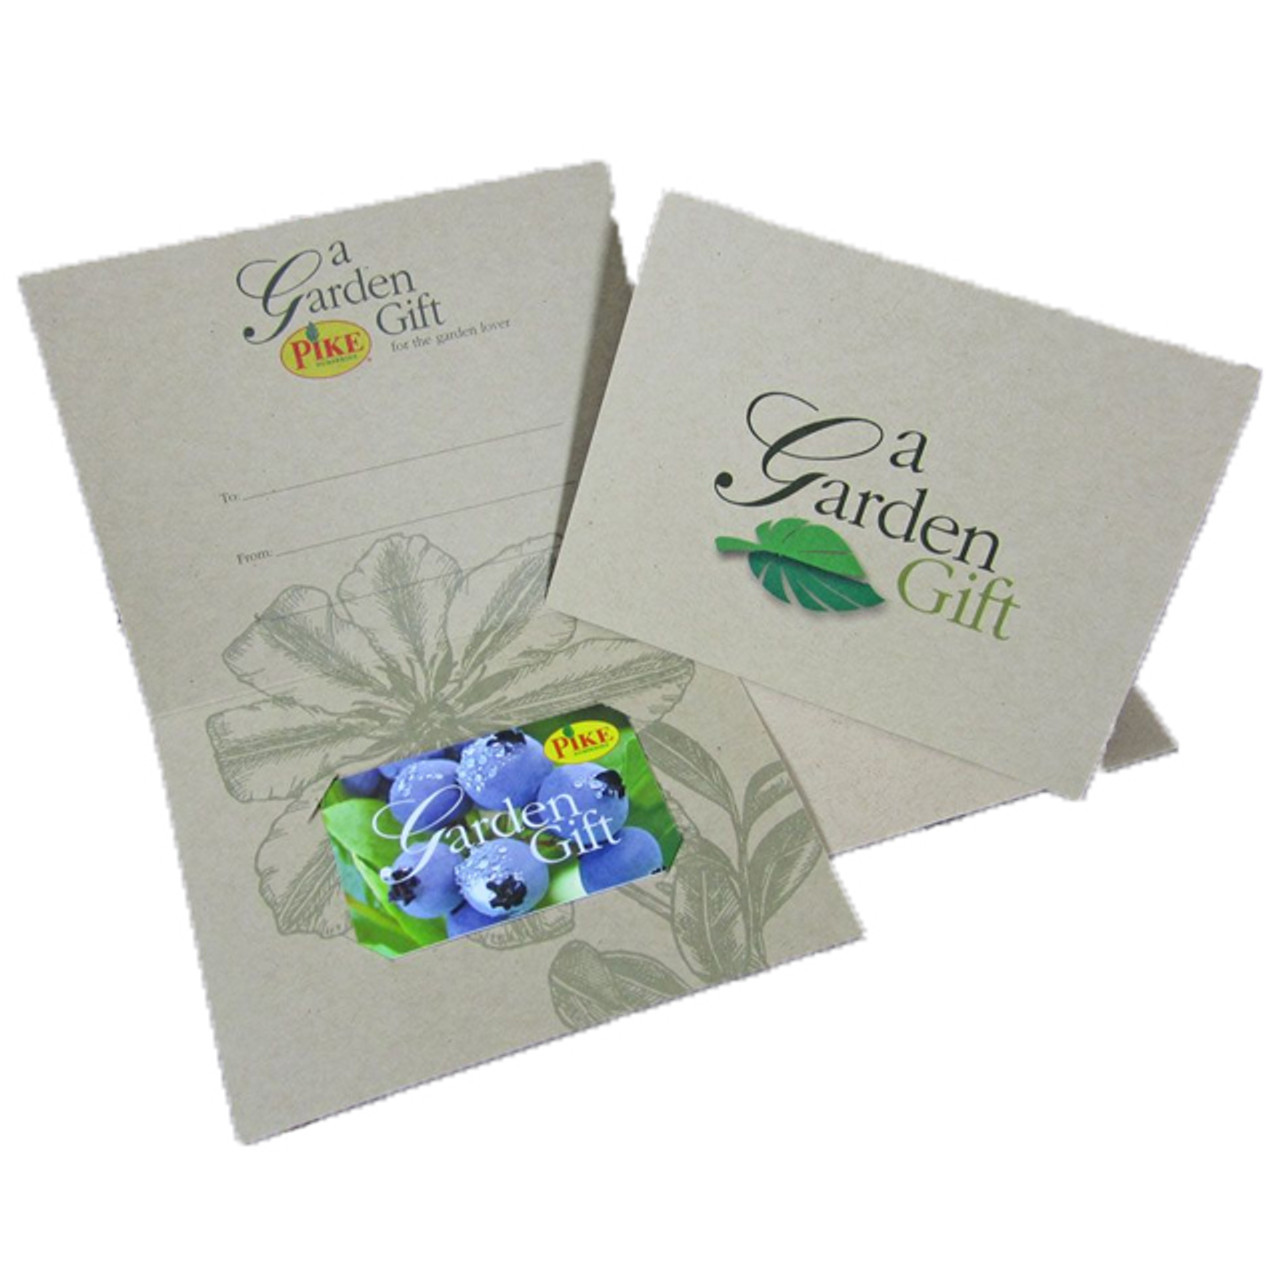 Garden Gift Cards by Mail